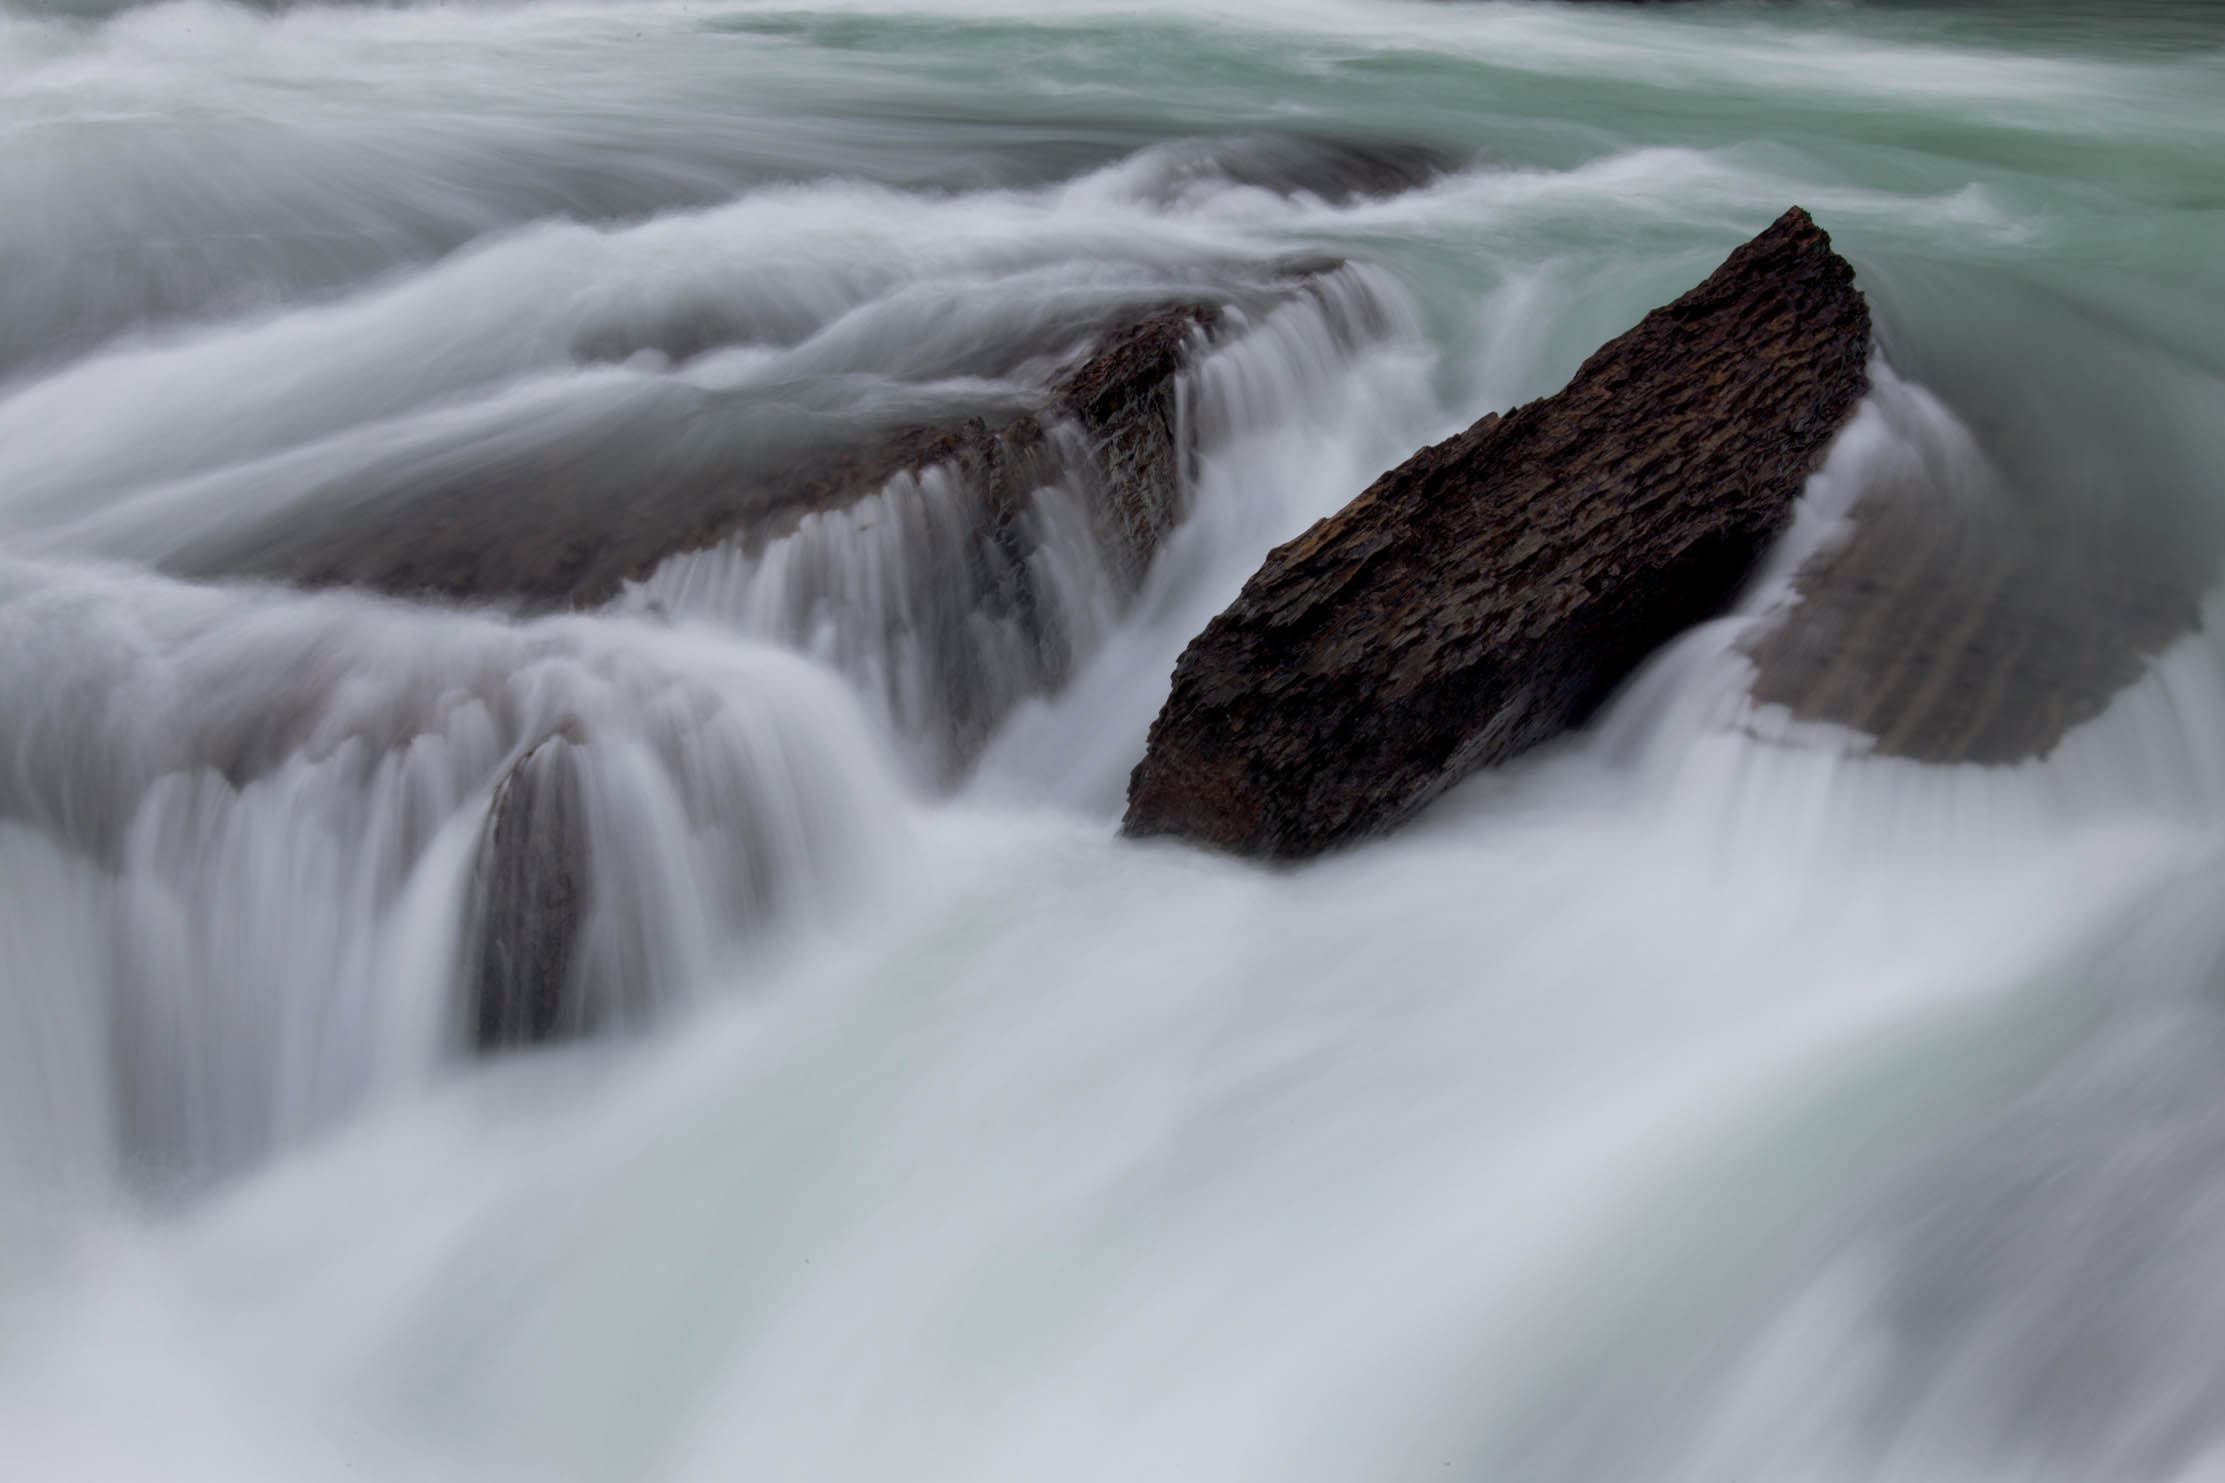 Capturing the flow of a river with a slow shutter speed (1s) was traditionally done out of necessity, but now is more of an artistic choice. 1 sec.; f/32; ISO 50; Canon 5D Mark II; EF70-200mm f/4L IS USM @ 78mm